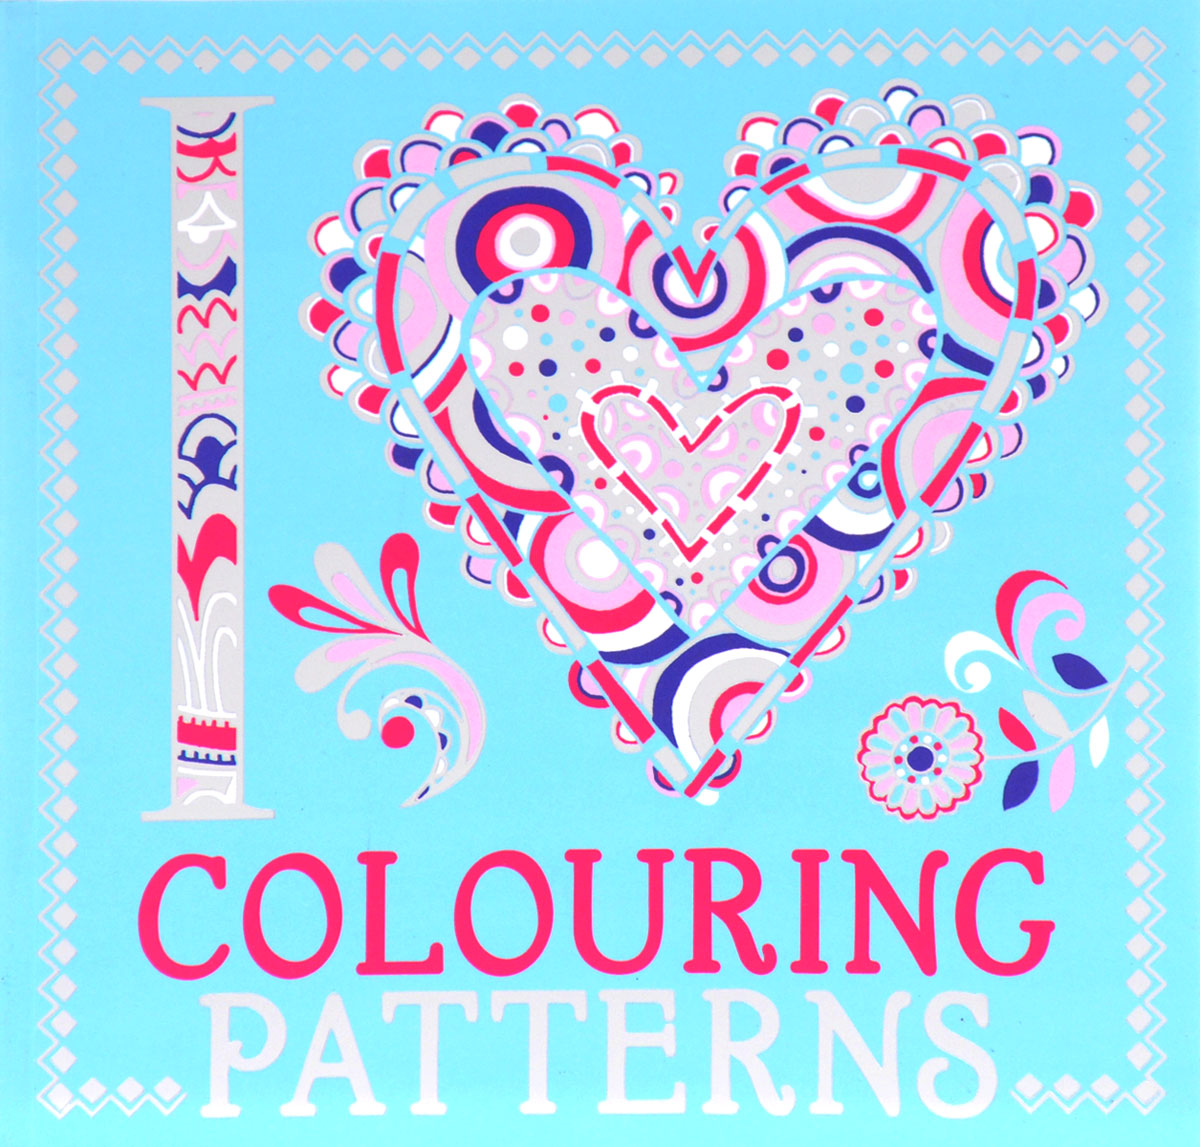 I Heart Colouring: Patterns folk art patterns to colour